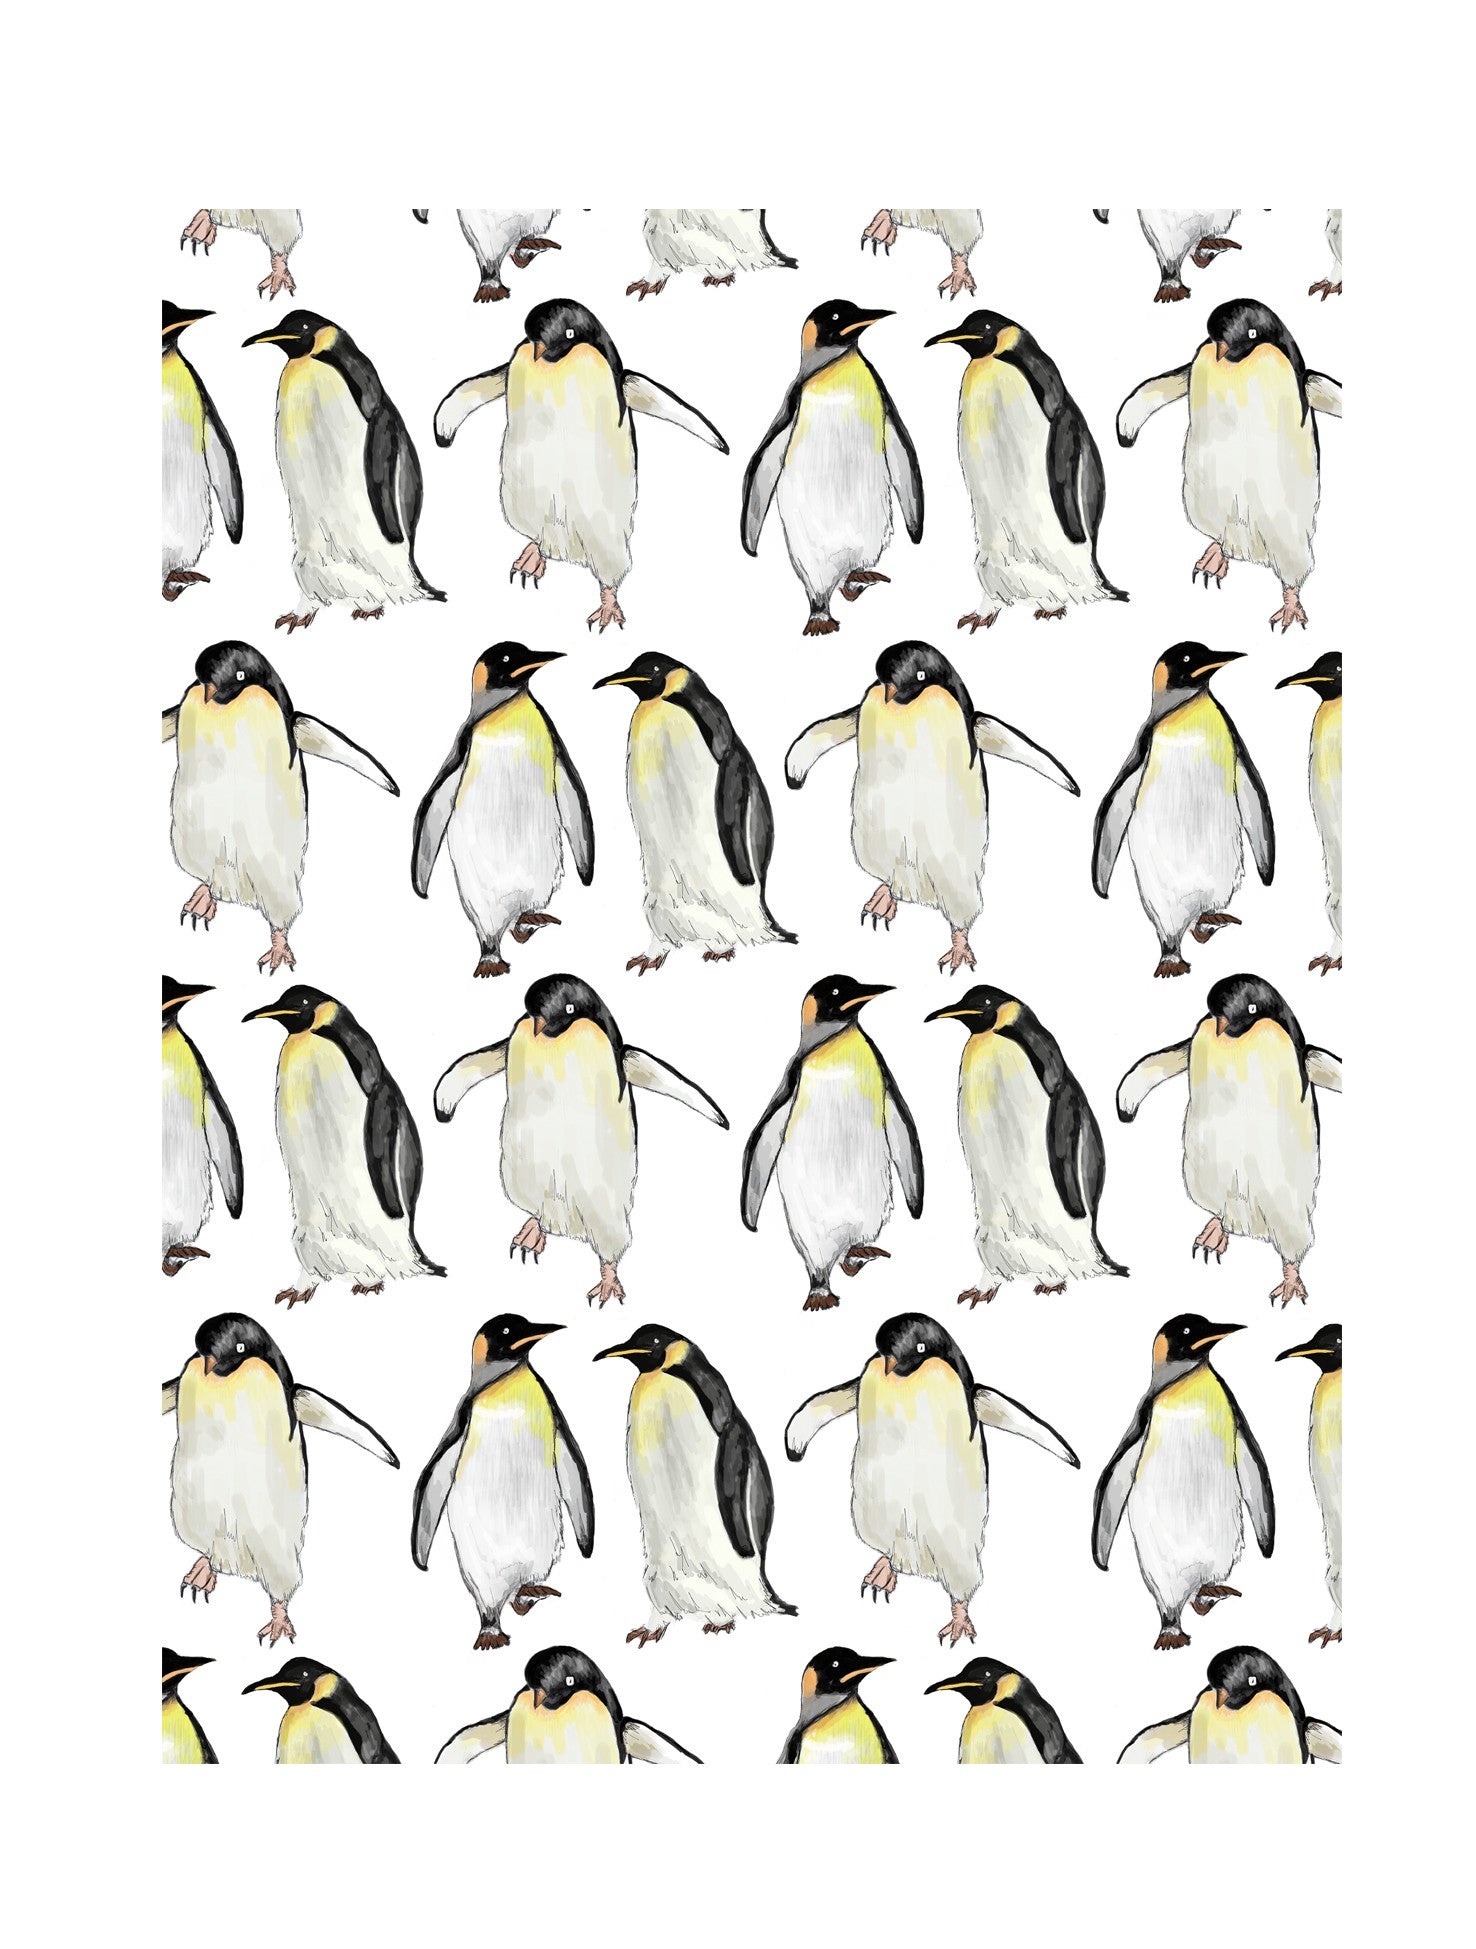 Penguin | Illustrated Animal Wall Print - Merri | Illustration | Stationery + Gifts | Manchester